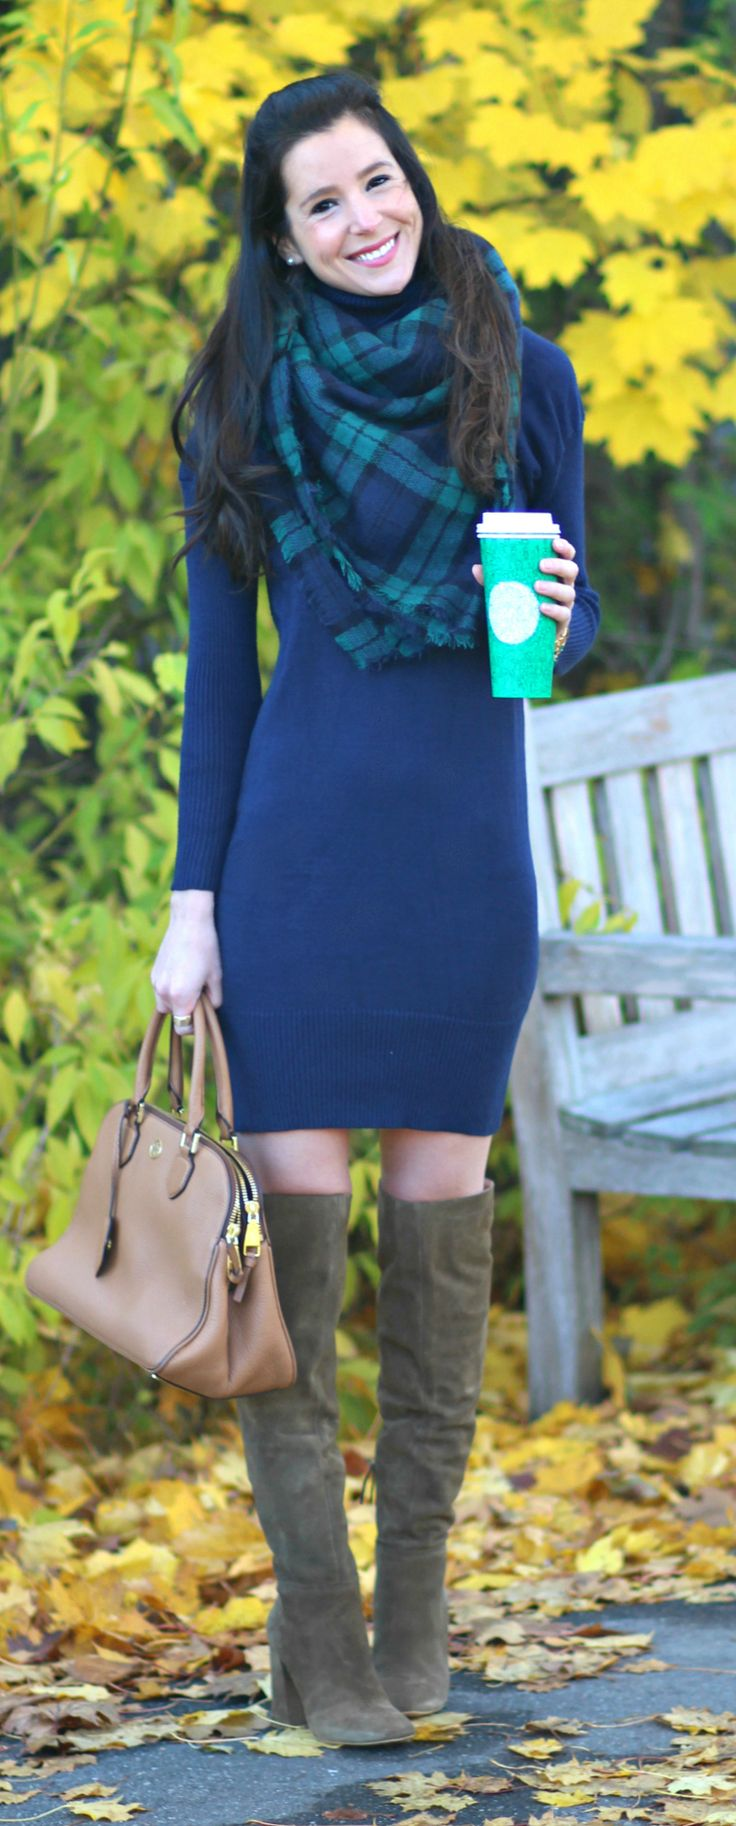 Cute fall outfit idea for young women! Navy blue turtleneck sweater dress, green and blue tartan blanket scarf, and cognac over-the-knee boots. So many pieces of this ensemble could be re-worn for dozens of classic fall outfits!